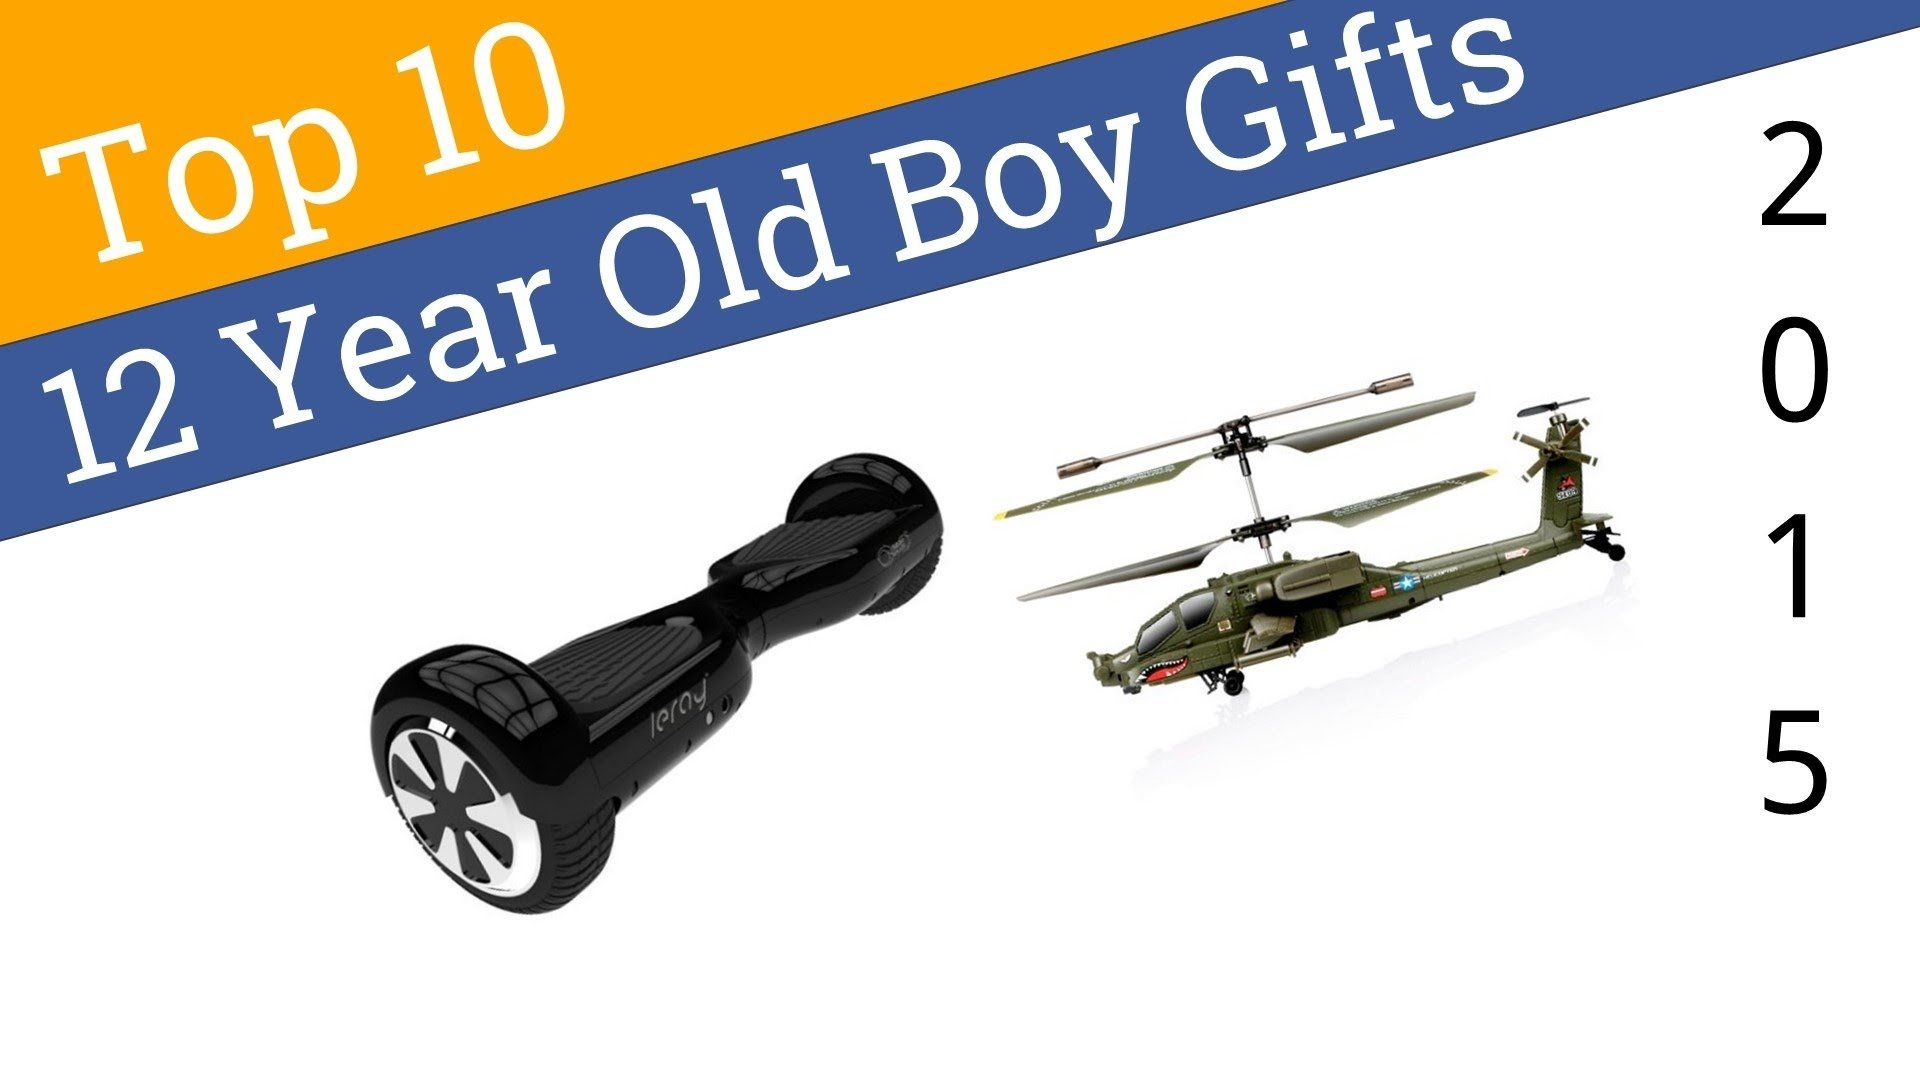 10 best 12 year old boy gifts 2015 - youtube